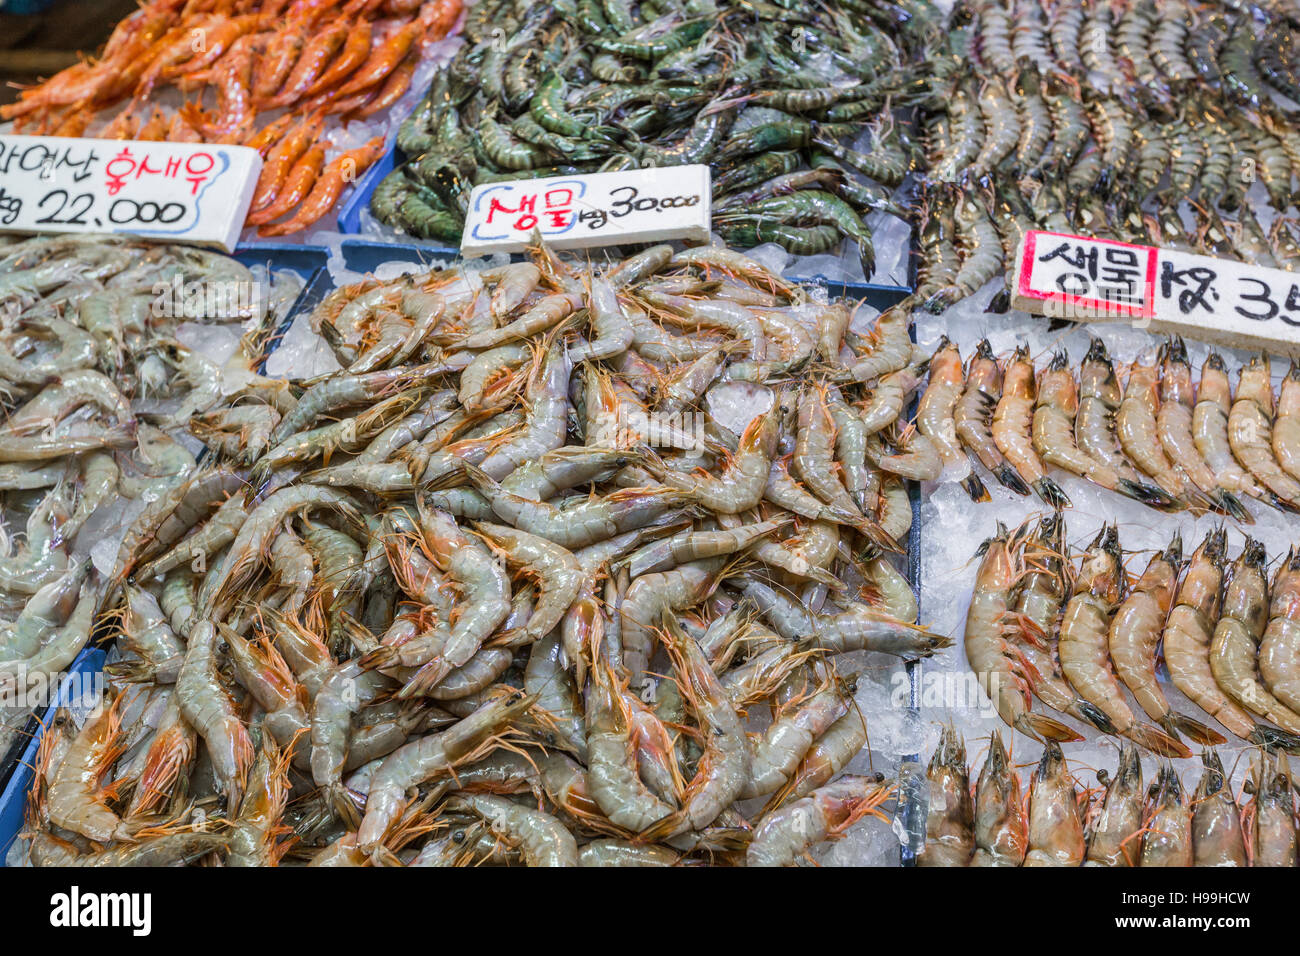 Noryangjin Fisheries Wholesale Market The 24 hour market has over 700 stalls selling fresh and dried seafood. Stock Photo